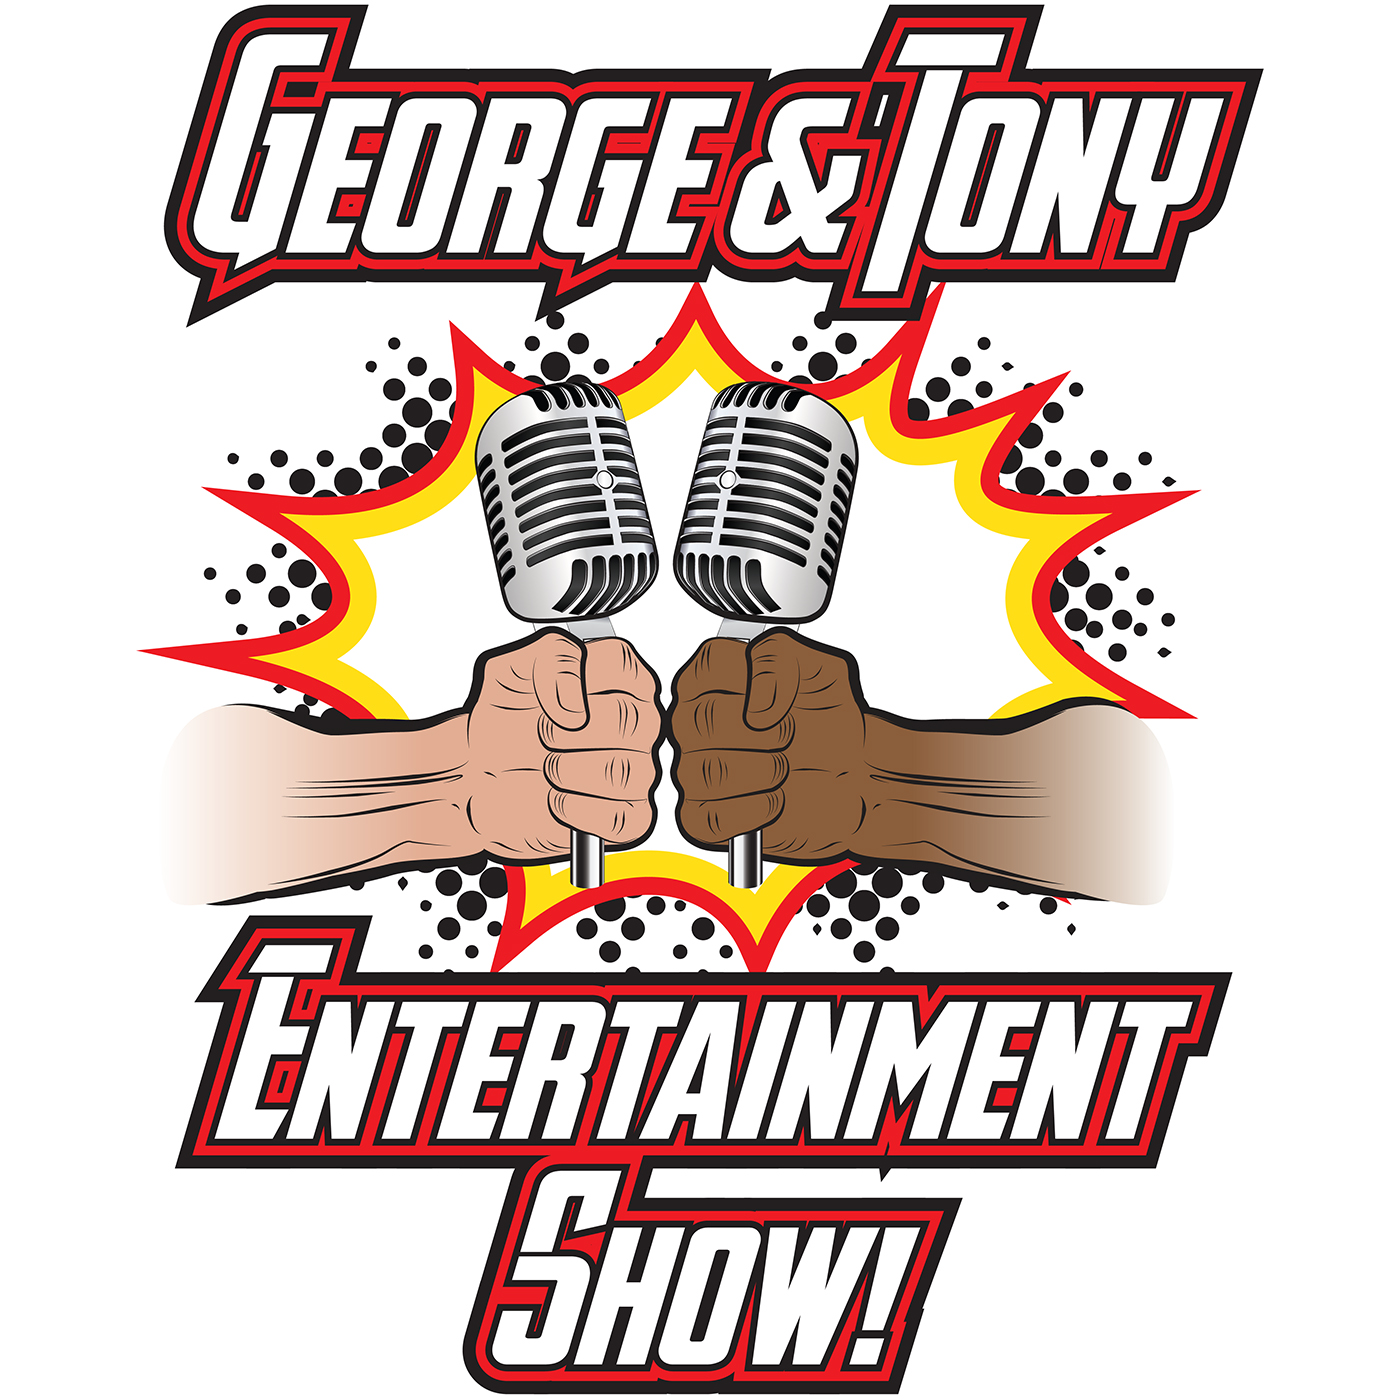 George and Tony Entertainment Show #84